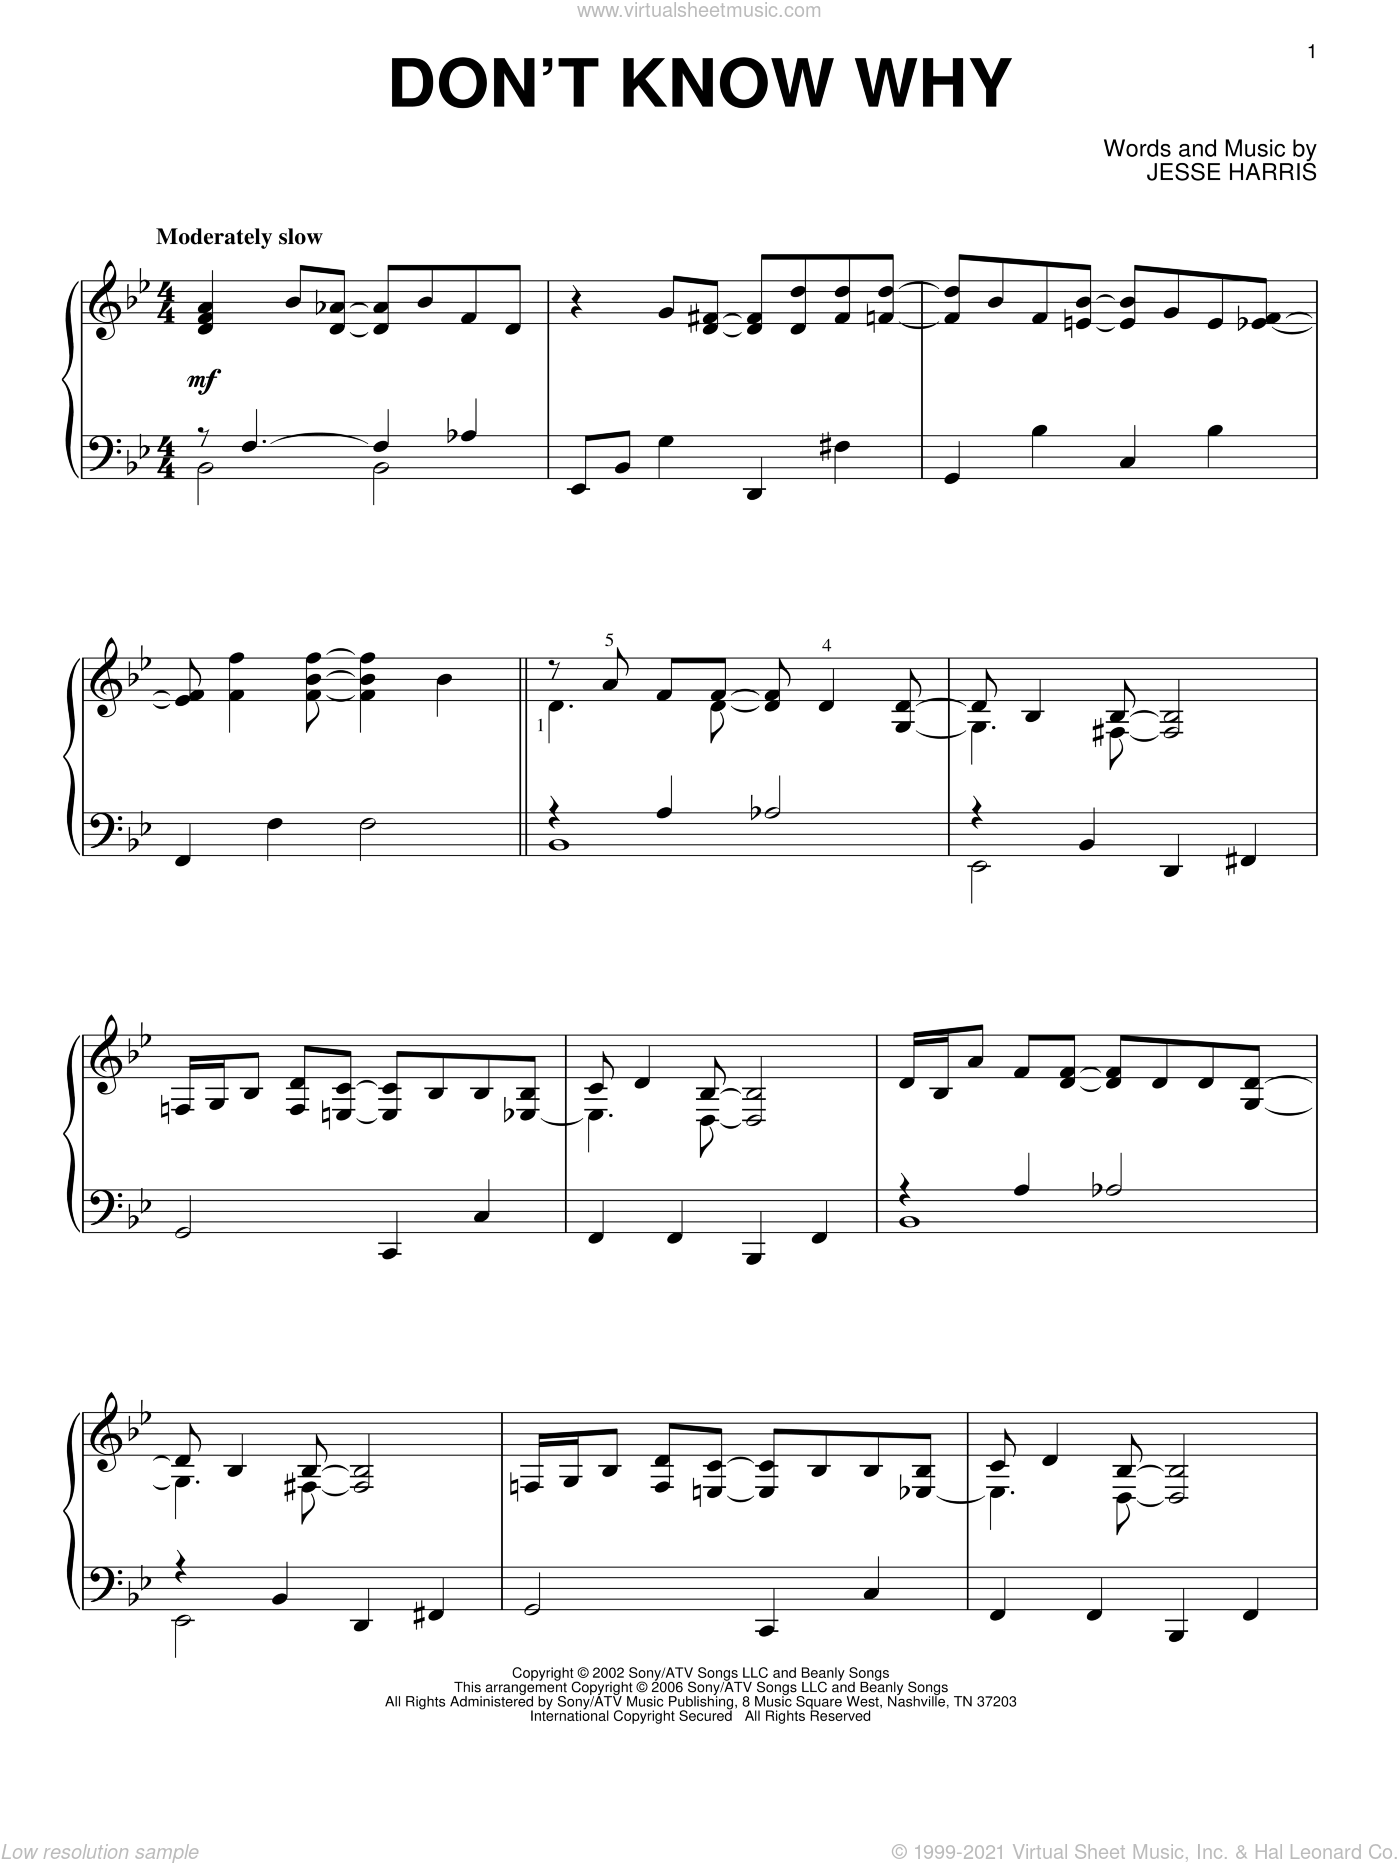 Don't Know Why sheet music for piano solo by Jesse Harris